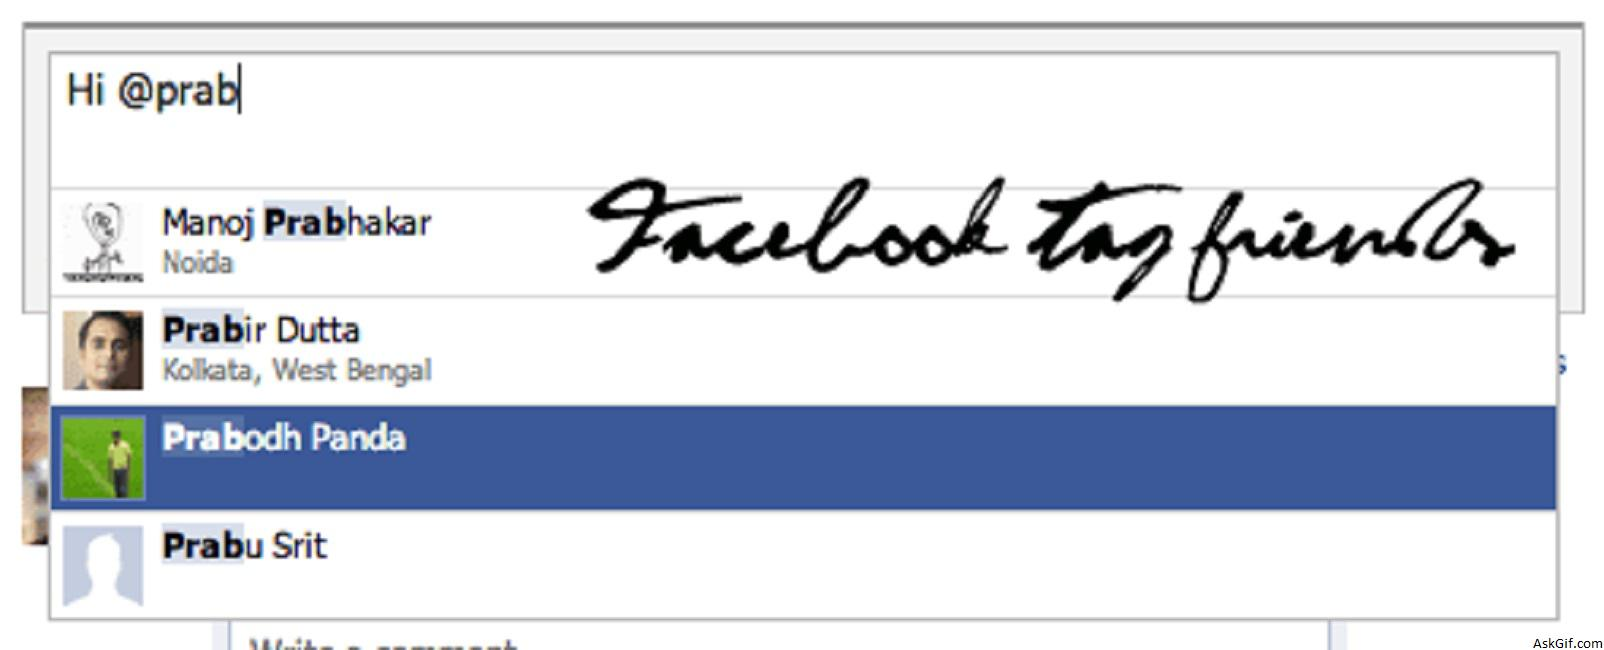 Implementing Facebook Style Tag Friends Using Jquery, Ajax and PHP